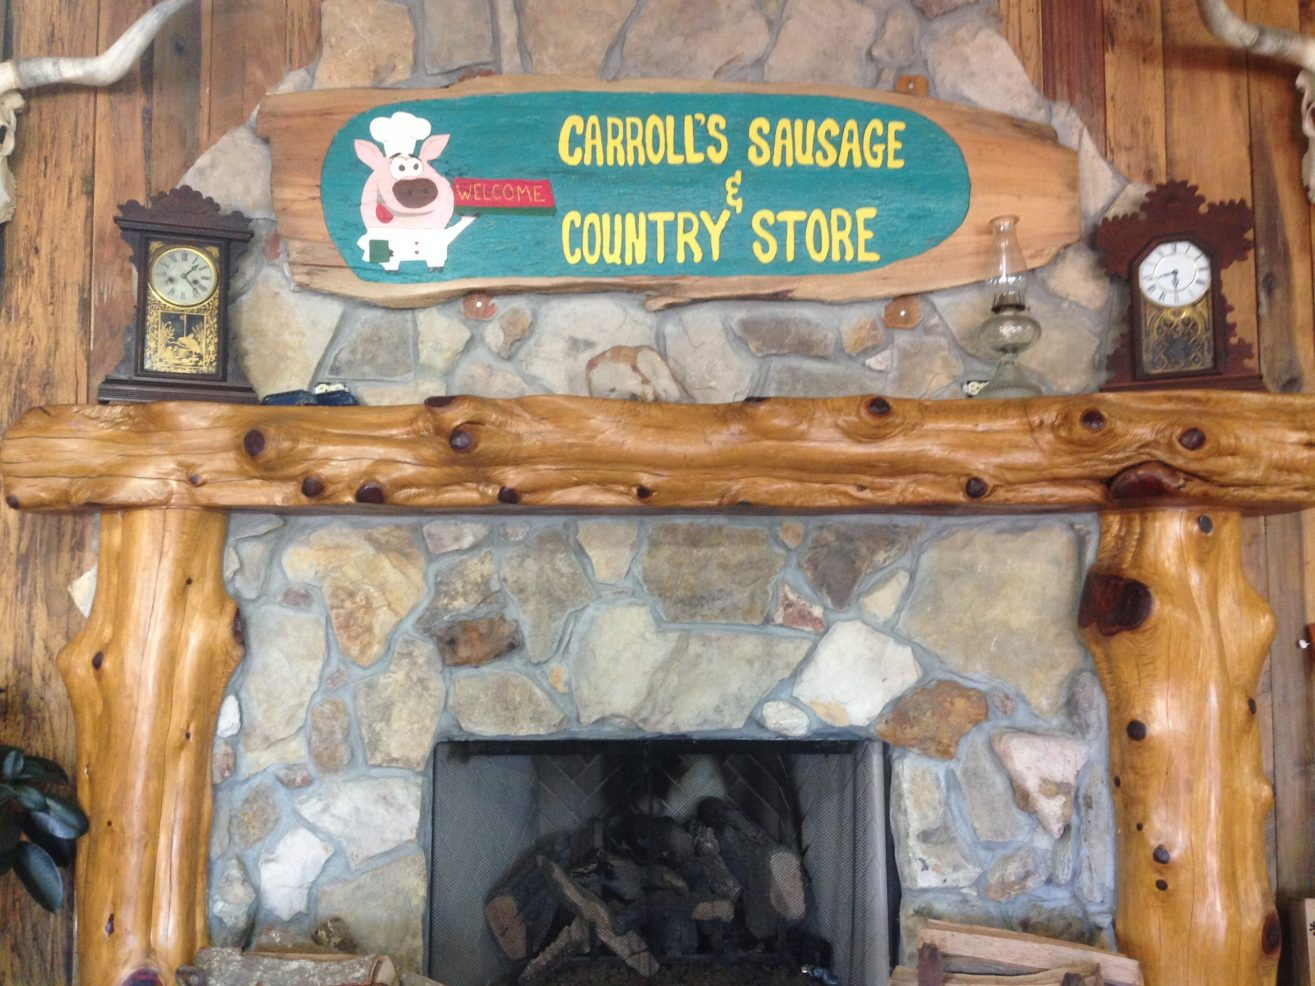 Carroll's Sausage Store Fireplace